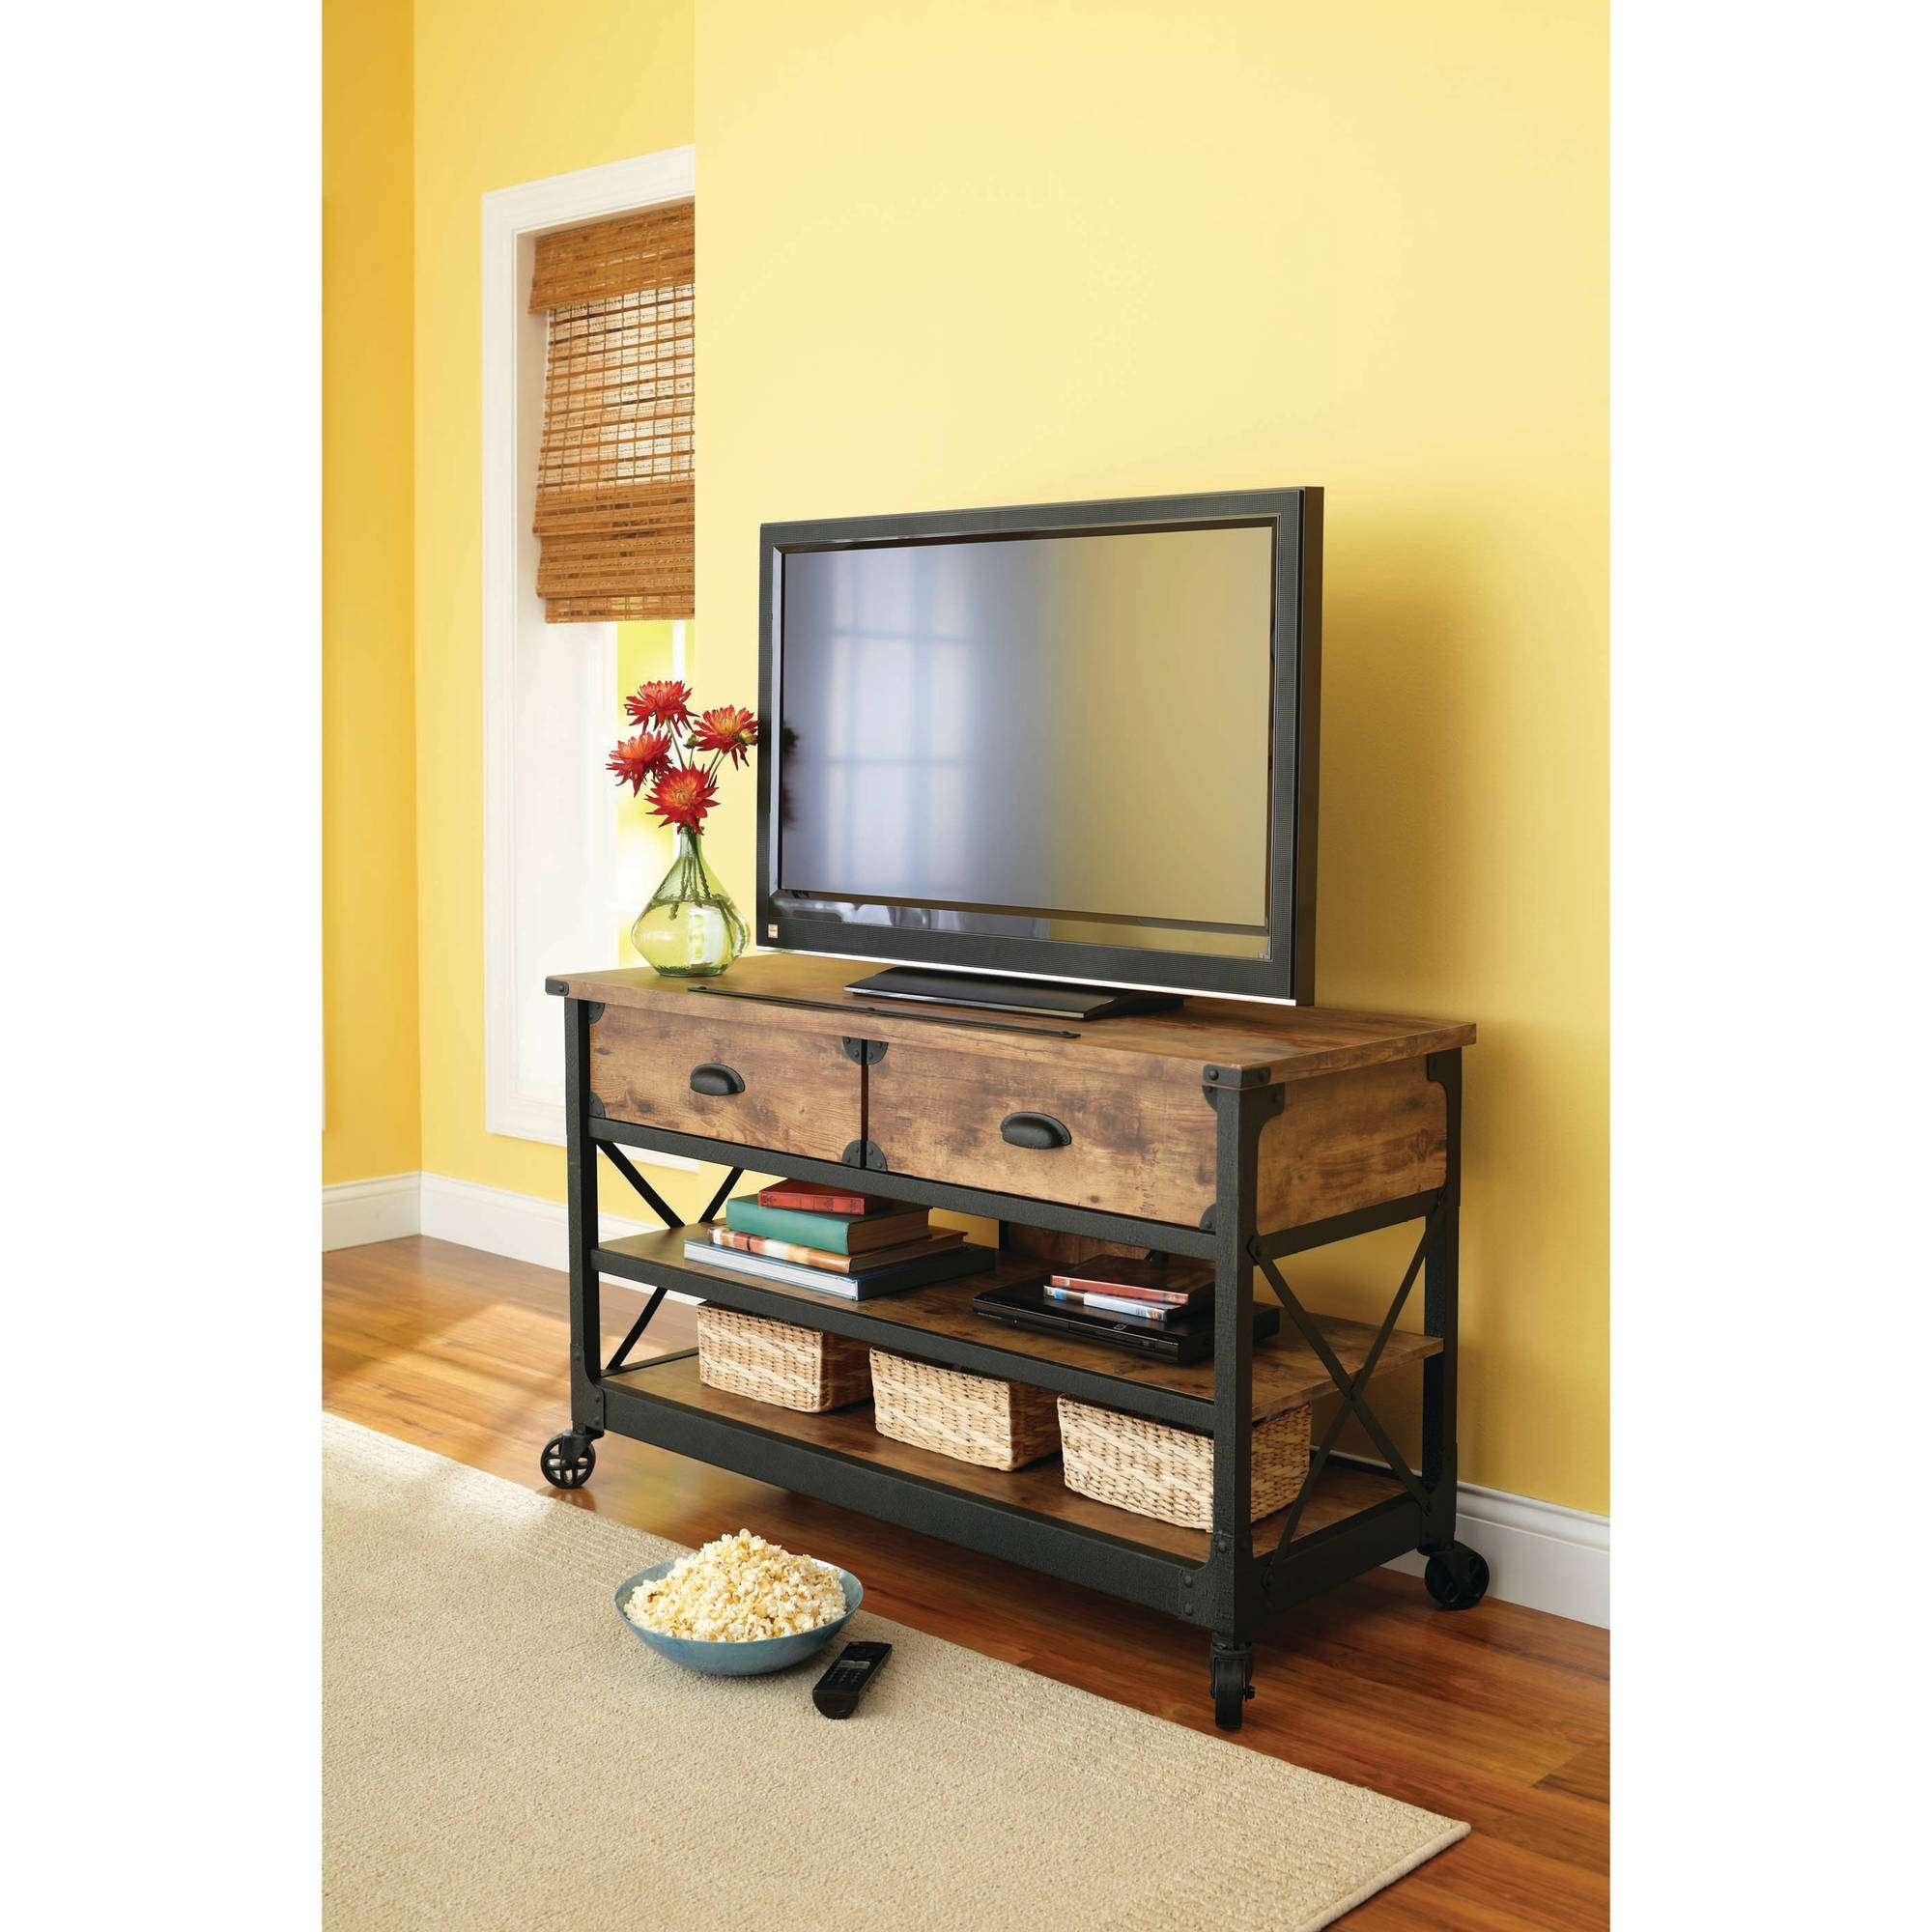 Better Homes And Gardens Rustic Country Antiqued Black/pine Panel Intended For Rustic Furniture Tv Stands (View 3 of 20)